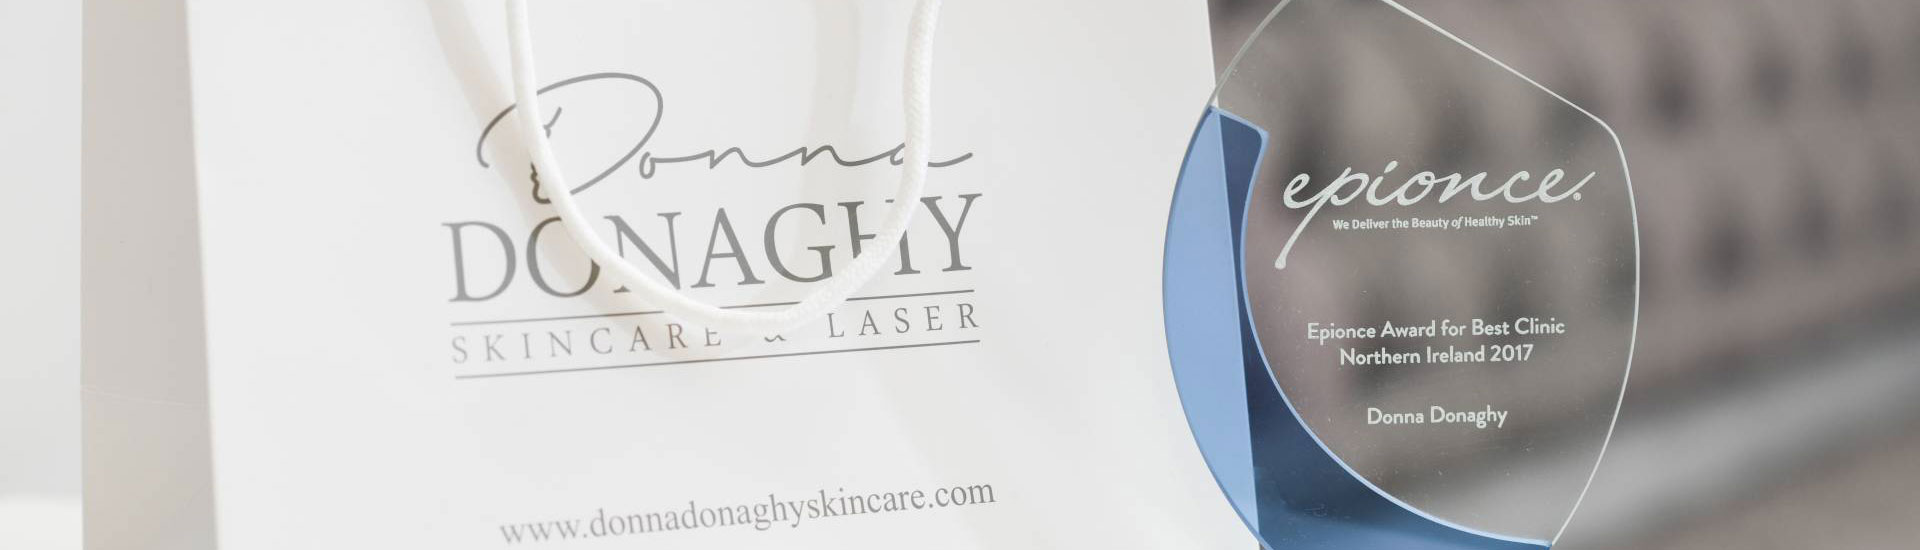 Donna Donaghy Skincare | Skincare & Laser Treatments